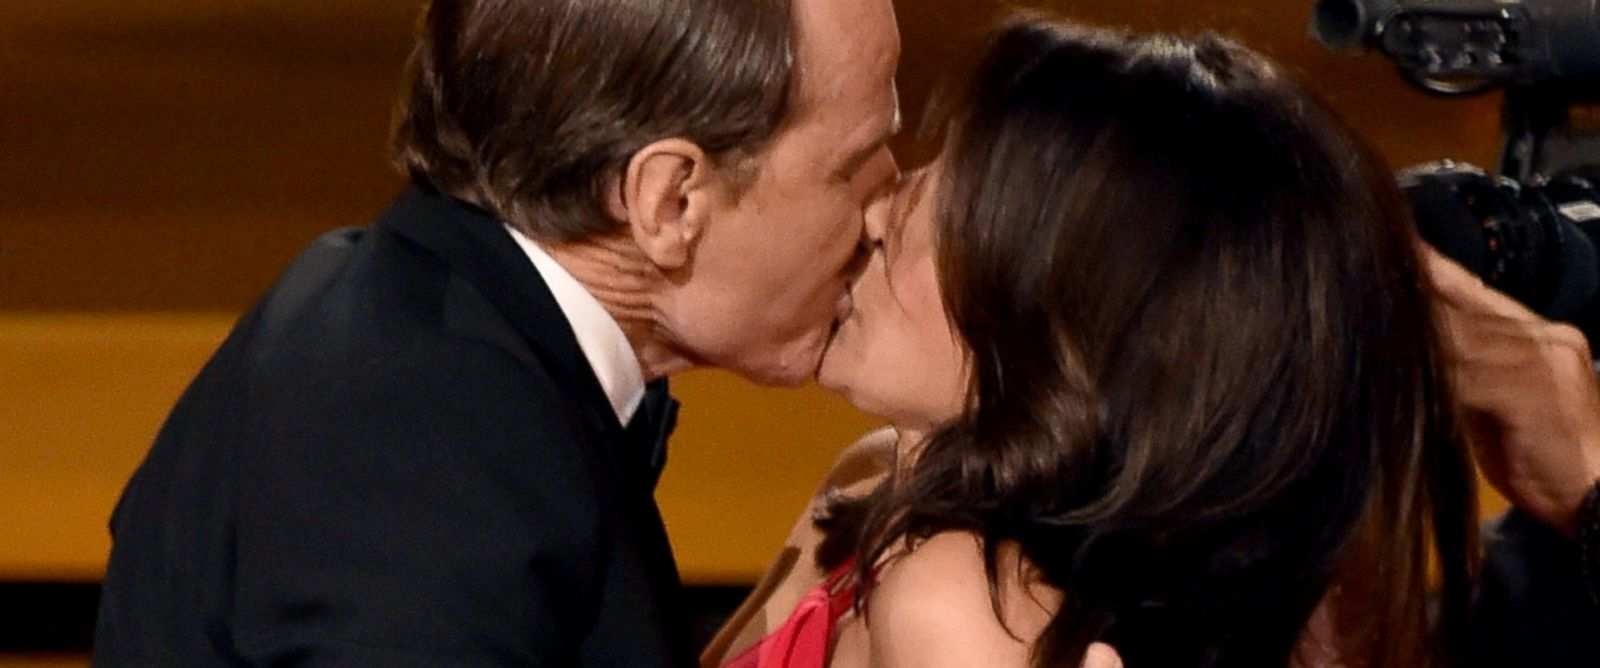 PHOTO: Actress Julia Louis-Dreyfus, right, wins Outstanding Lead Actress in a Comedy Series for Veep and kisses actor Bryan Cranston onstage at the 66th Annual Primetime Emmy Awards held at Nokia Theatre L.A. Live on Aug. 25, 2014 in Los Angeles.